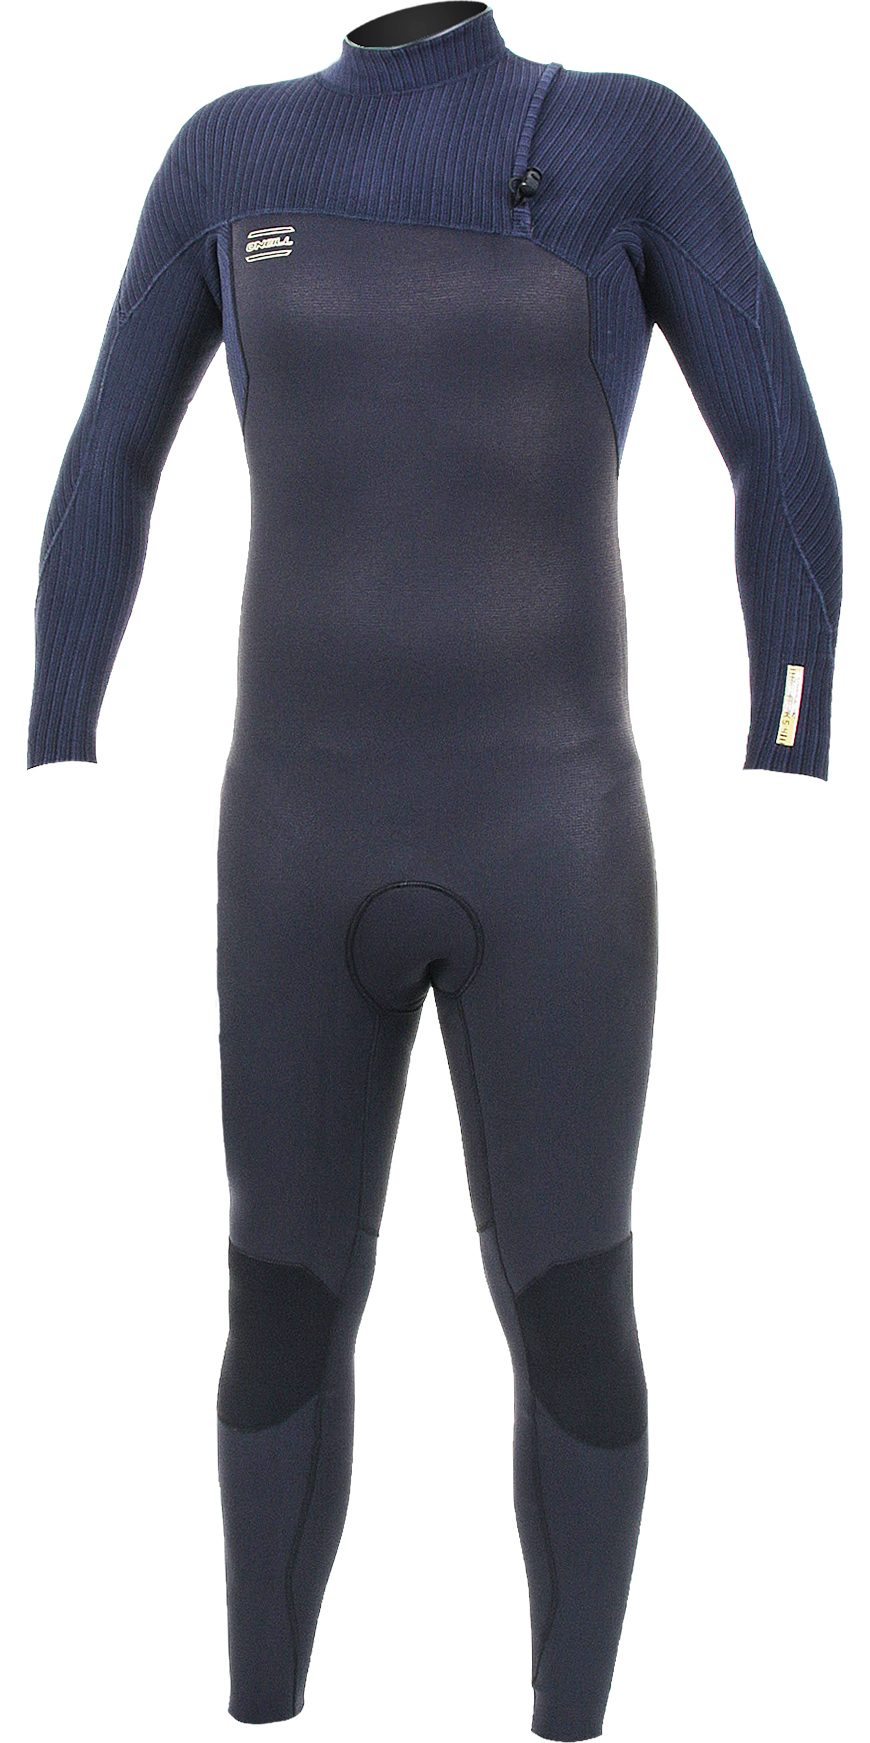 2019 O'Neill HyperFreak Comp 5/4mm Zip Free Wetsuit BLACK / Abyss 5005